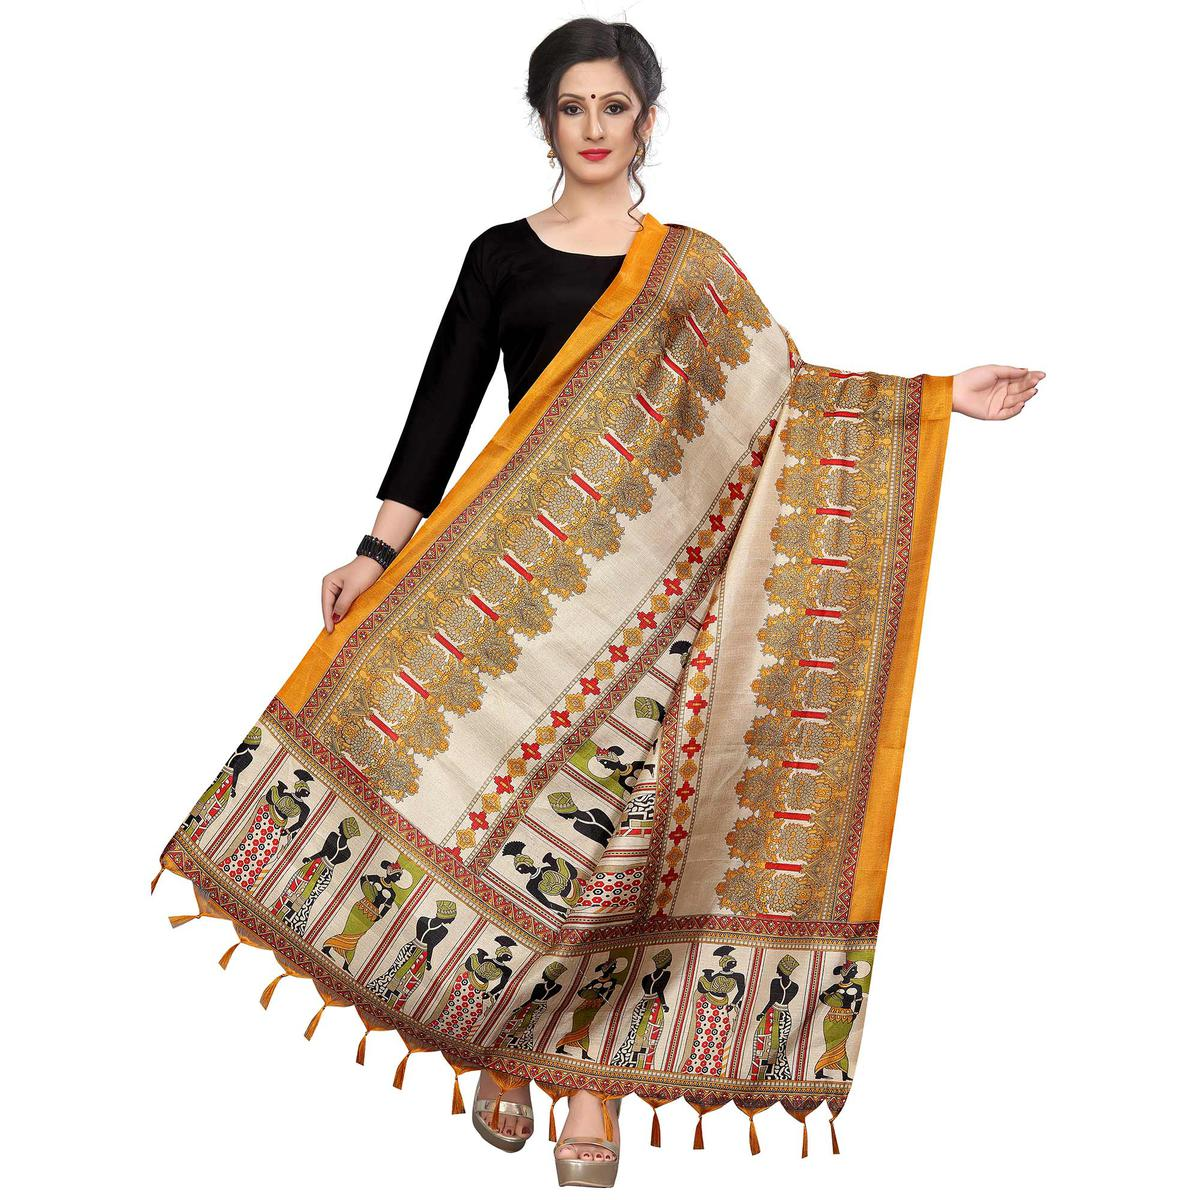 Energetic Mustard Yellow Colored Festive Wear Printed Khadi Silk Dupatta